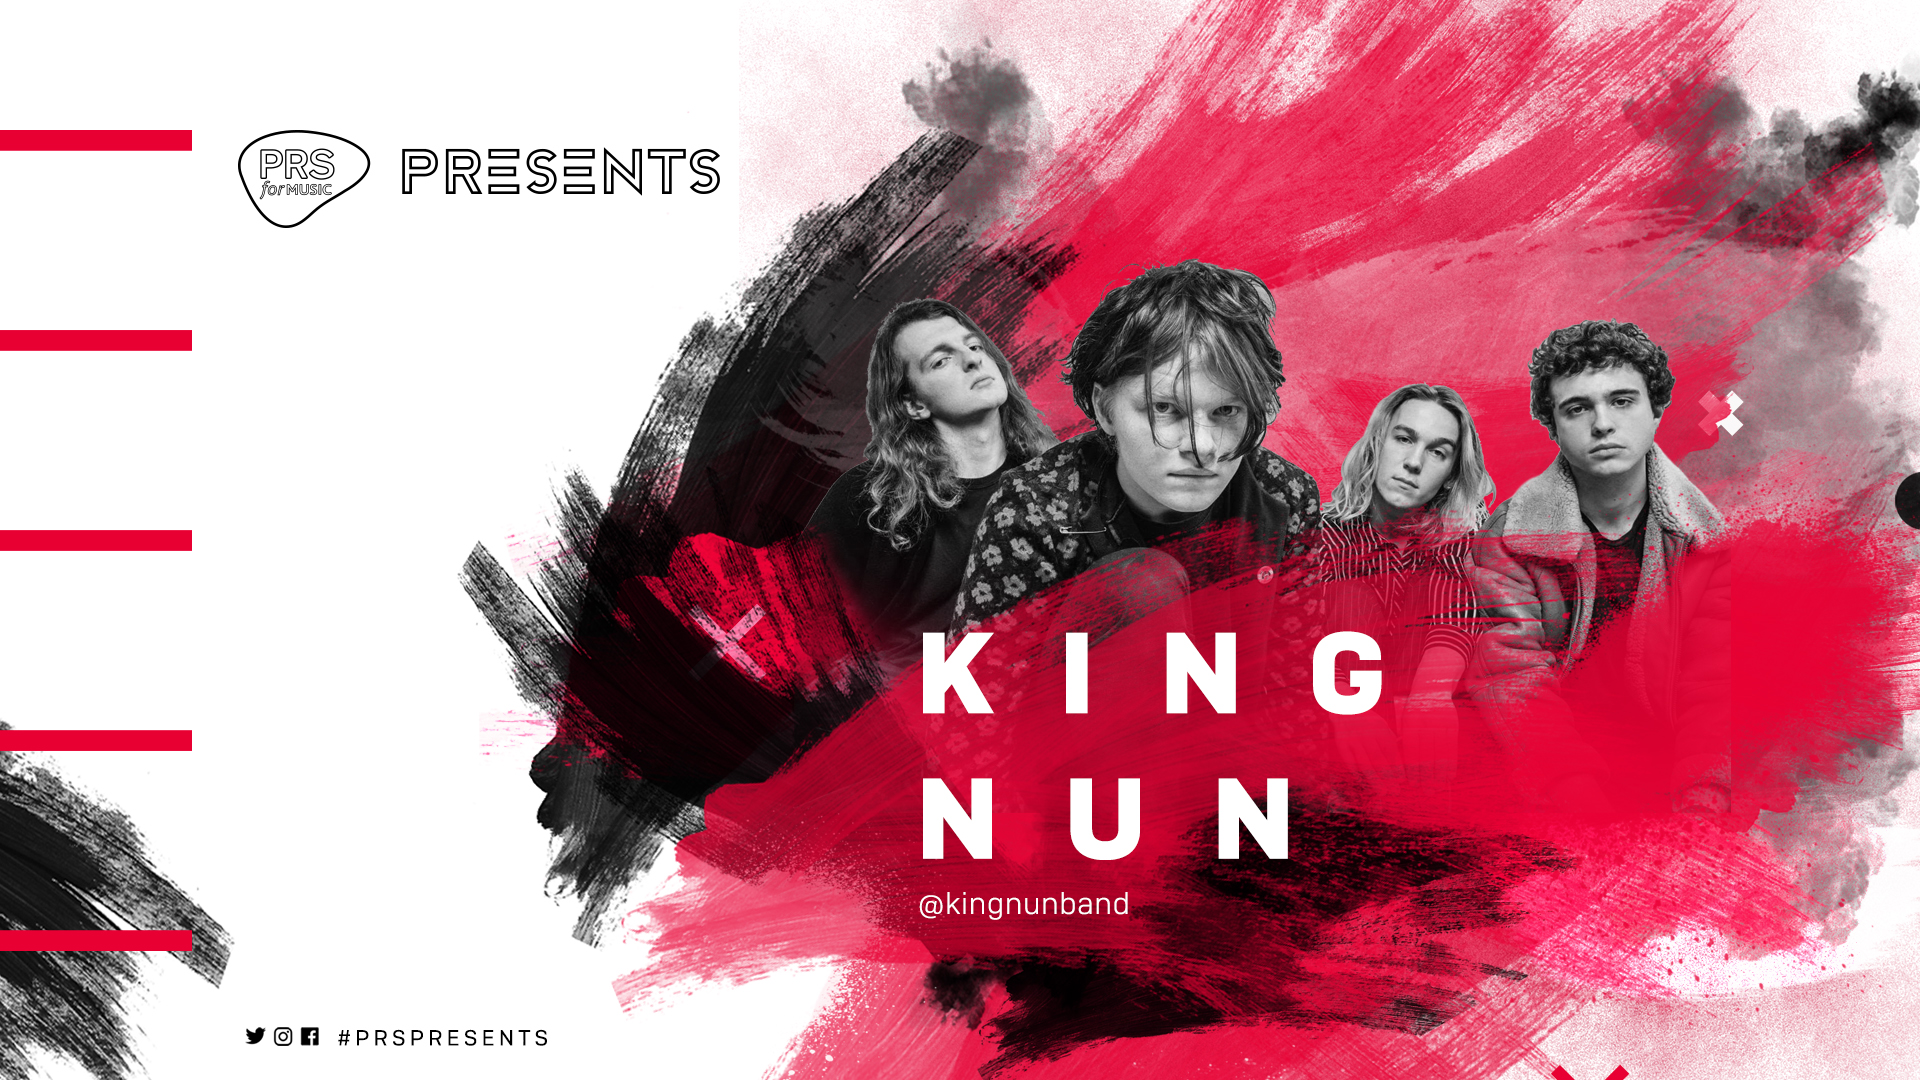 King nun image